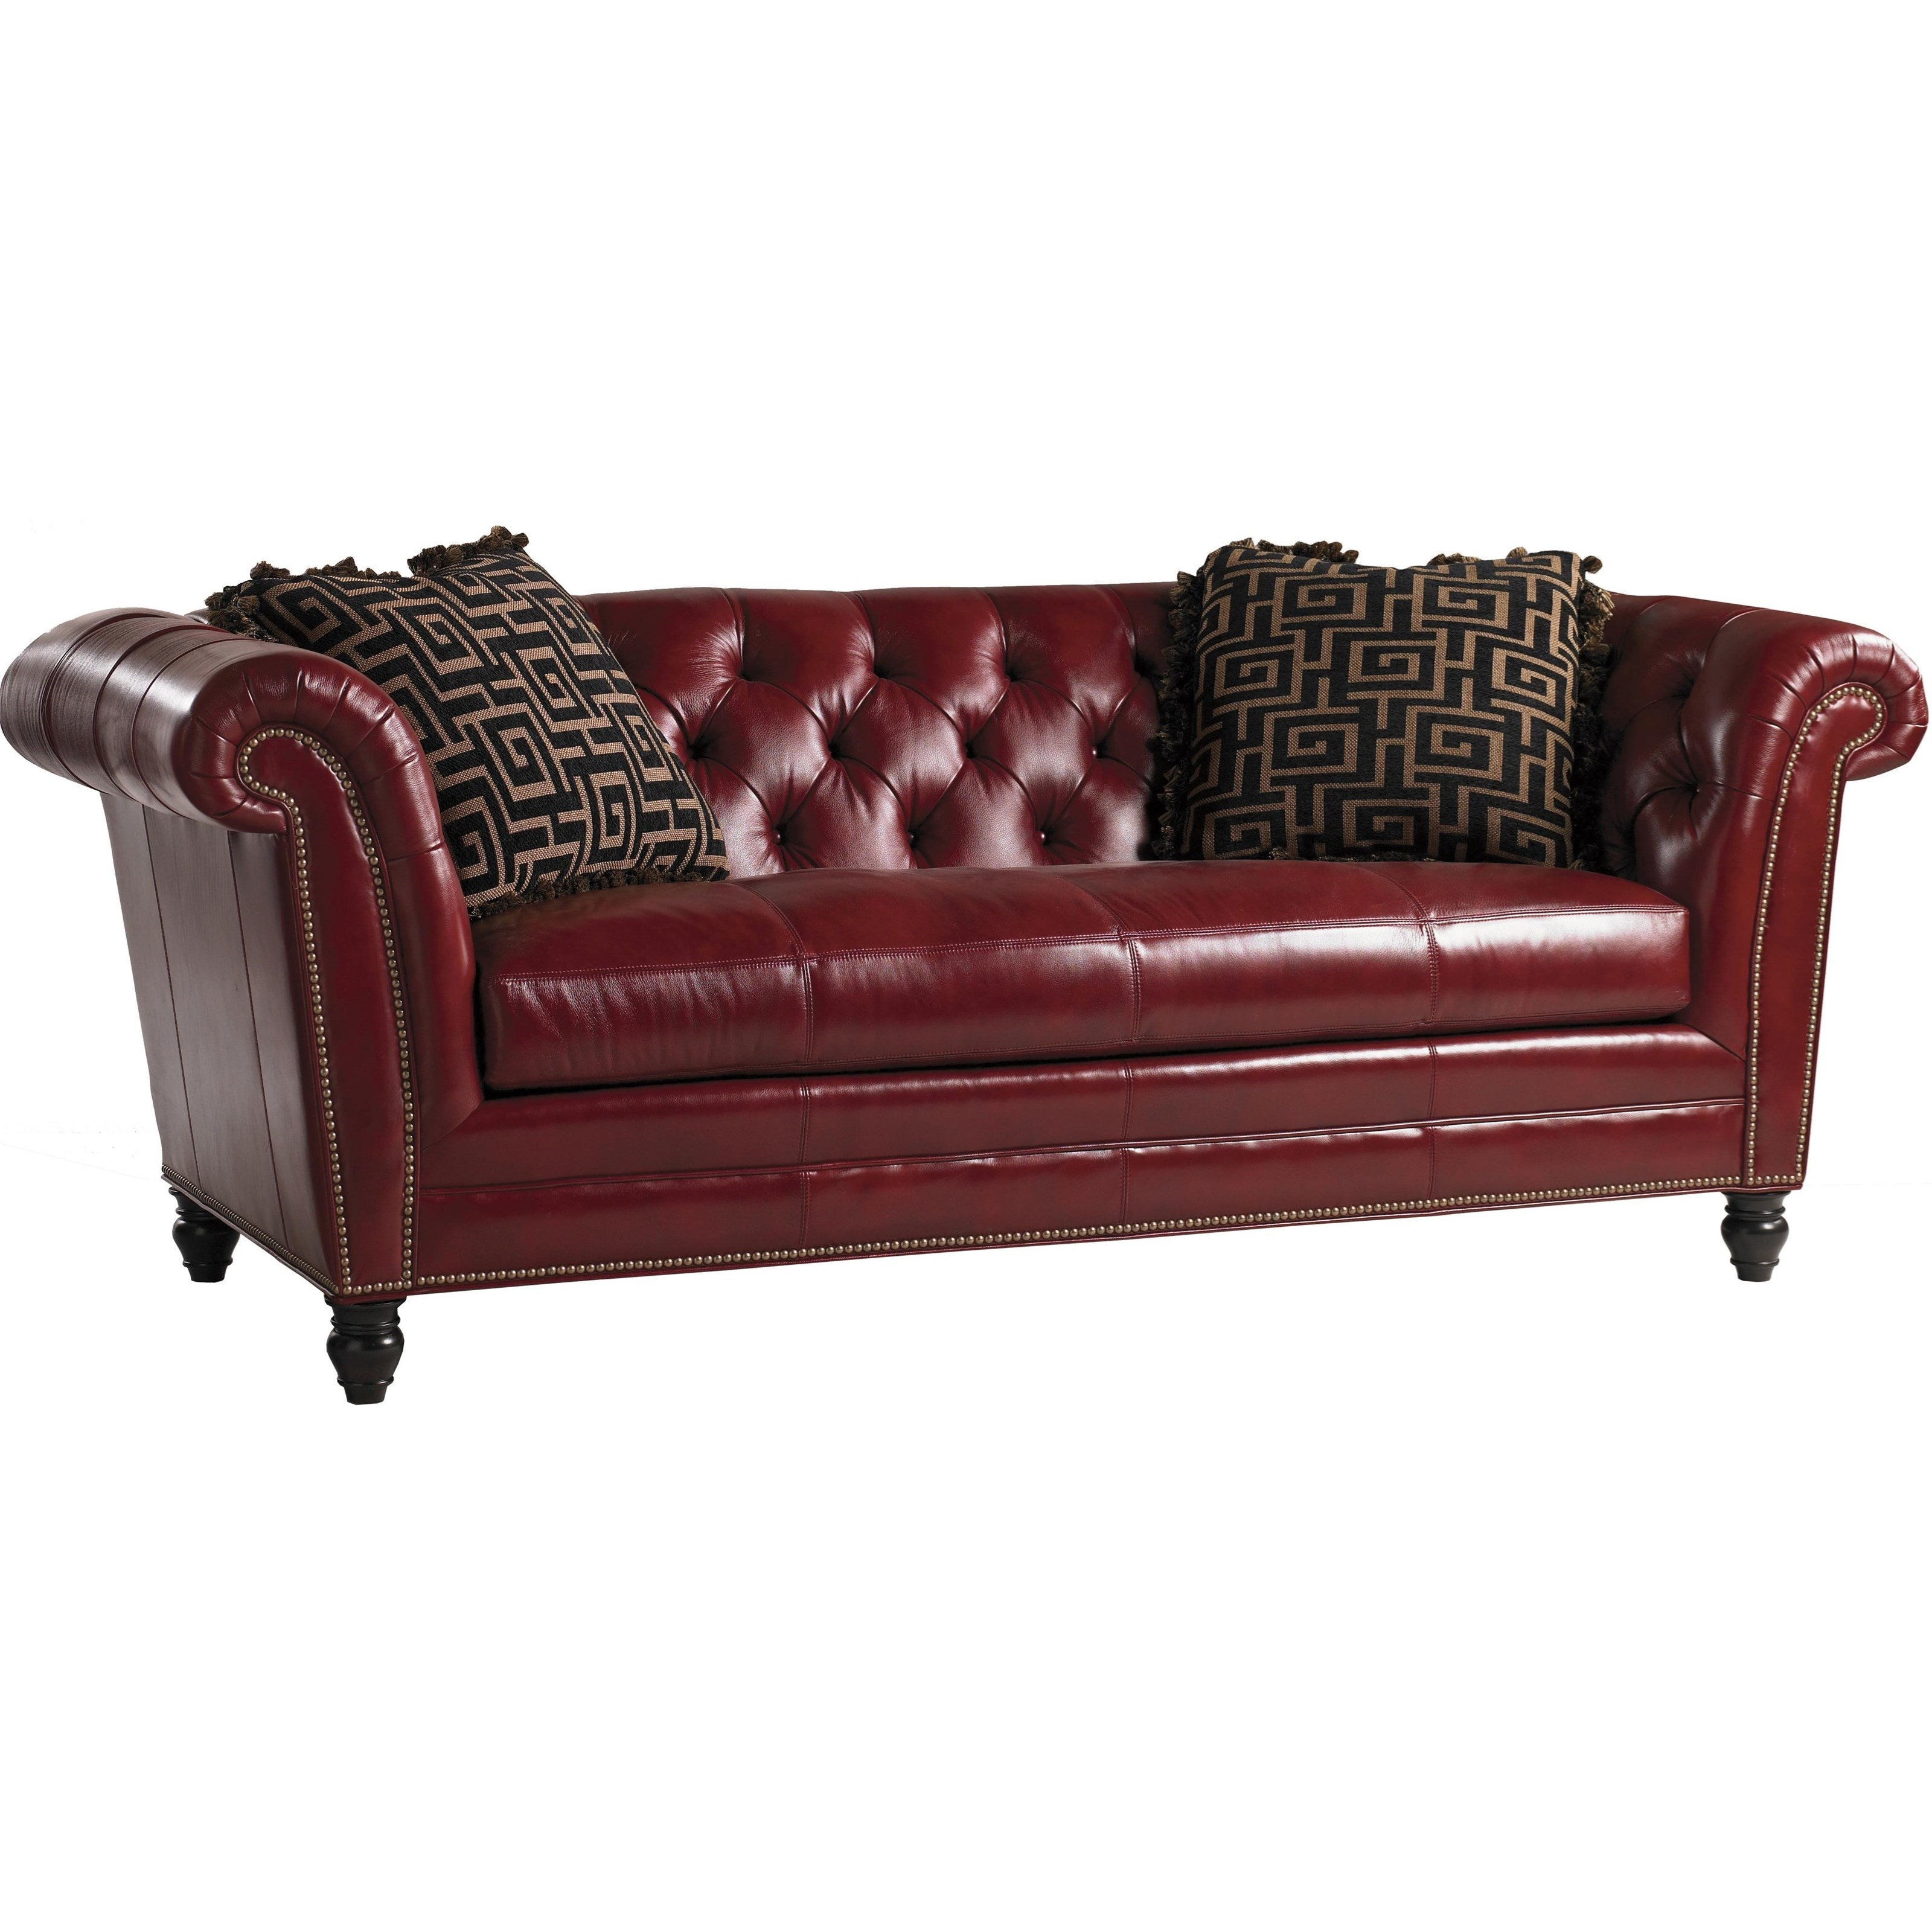 Lexington quick ship upholstery quick ship bridgewater tufted back red leather sofa with two Leather sofa throws